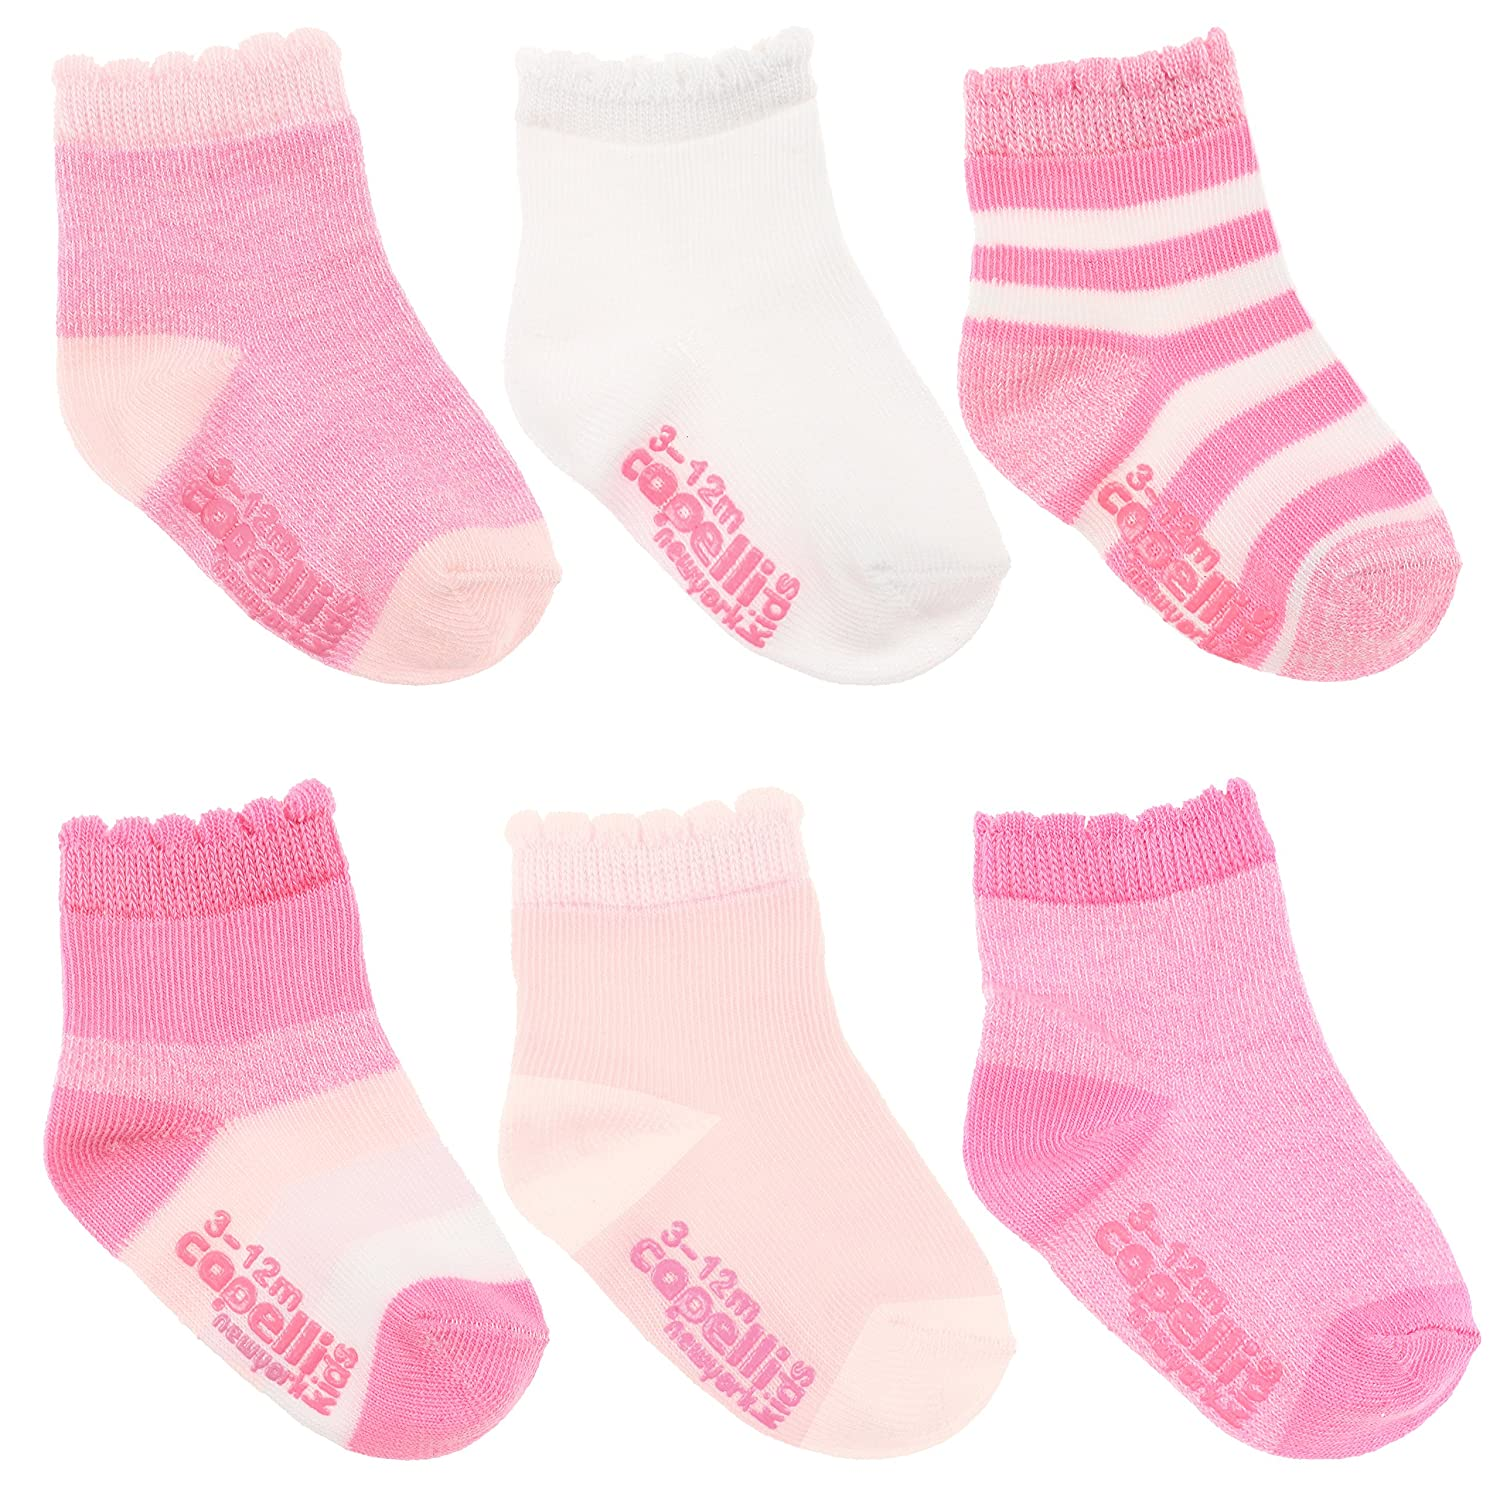 Capelli New York Infant Girls Cuffed Socks and Grippers